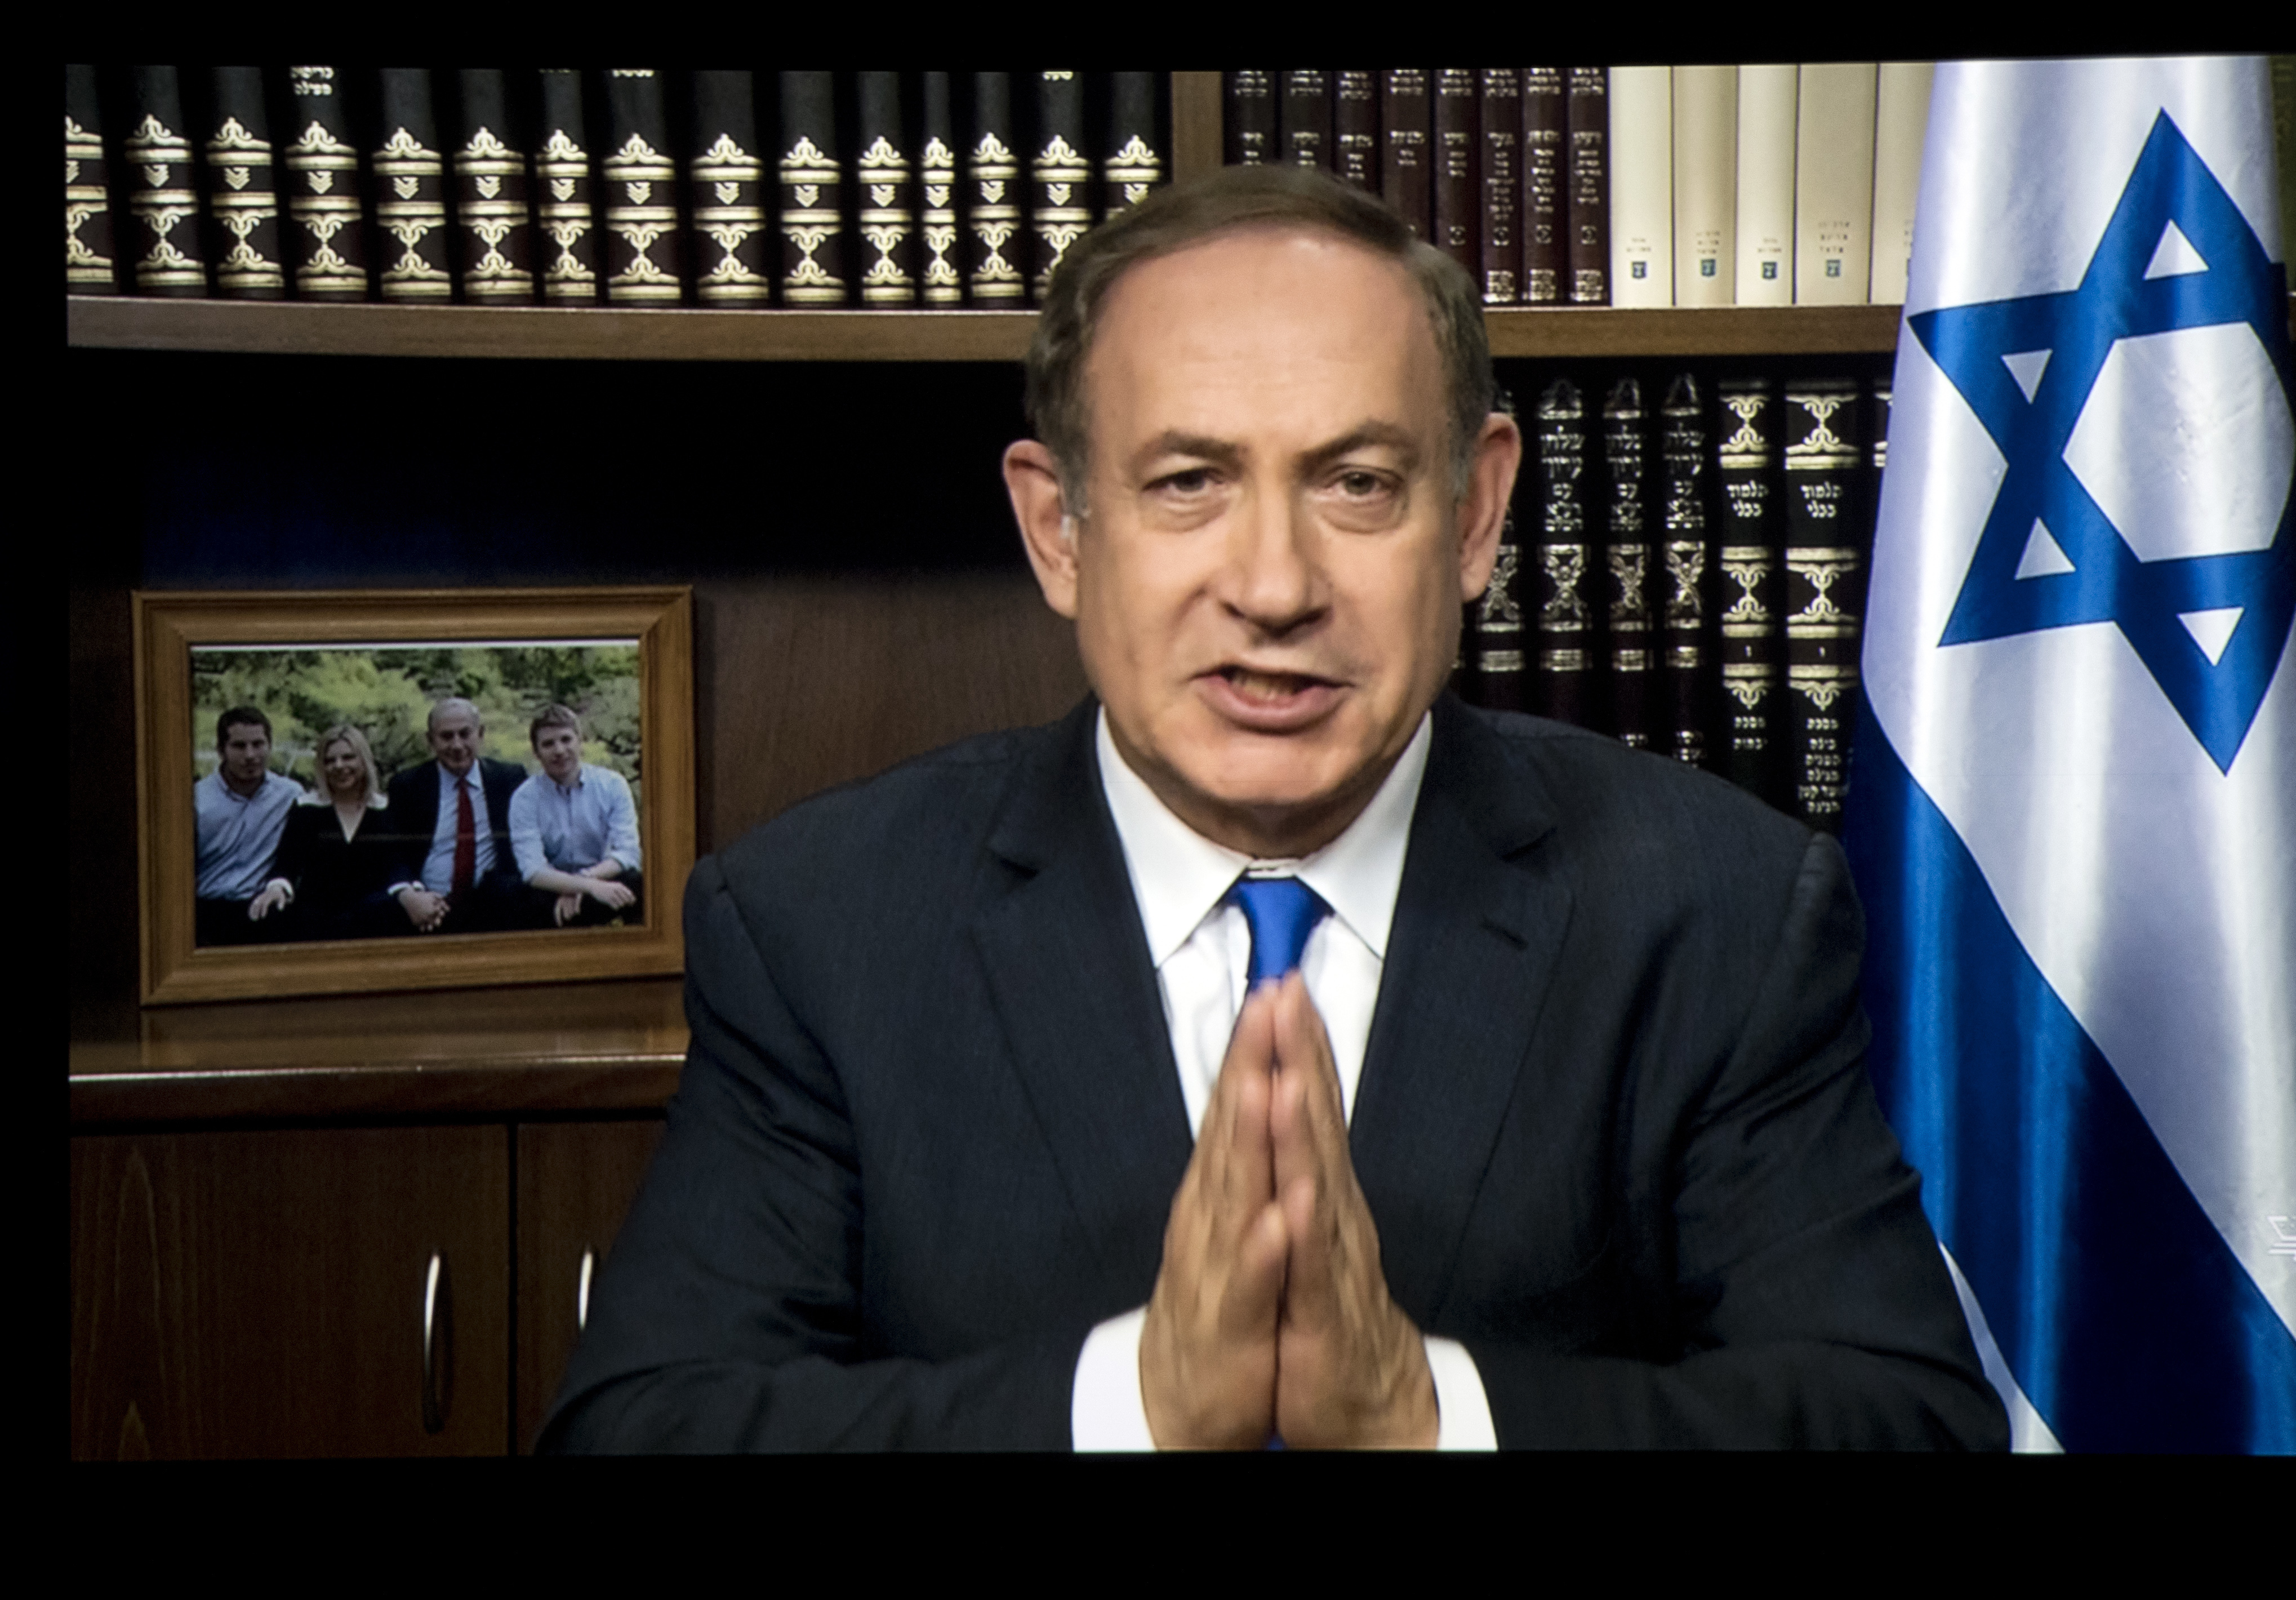 Israeli Prime Minister Benjamin Netanyahu is projected on a screen in Washington as he speaks to attendees of the AIPAC Policy Conference 2017 via satellite from Israel, March 27, 2017, in Washington.